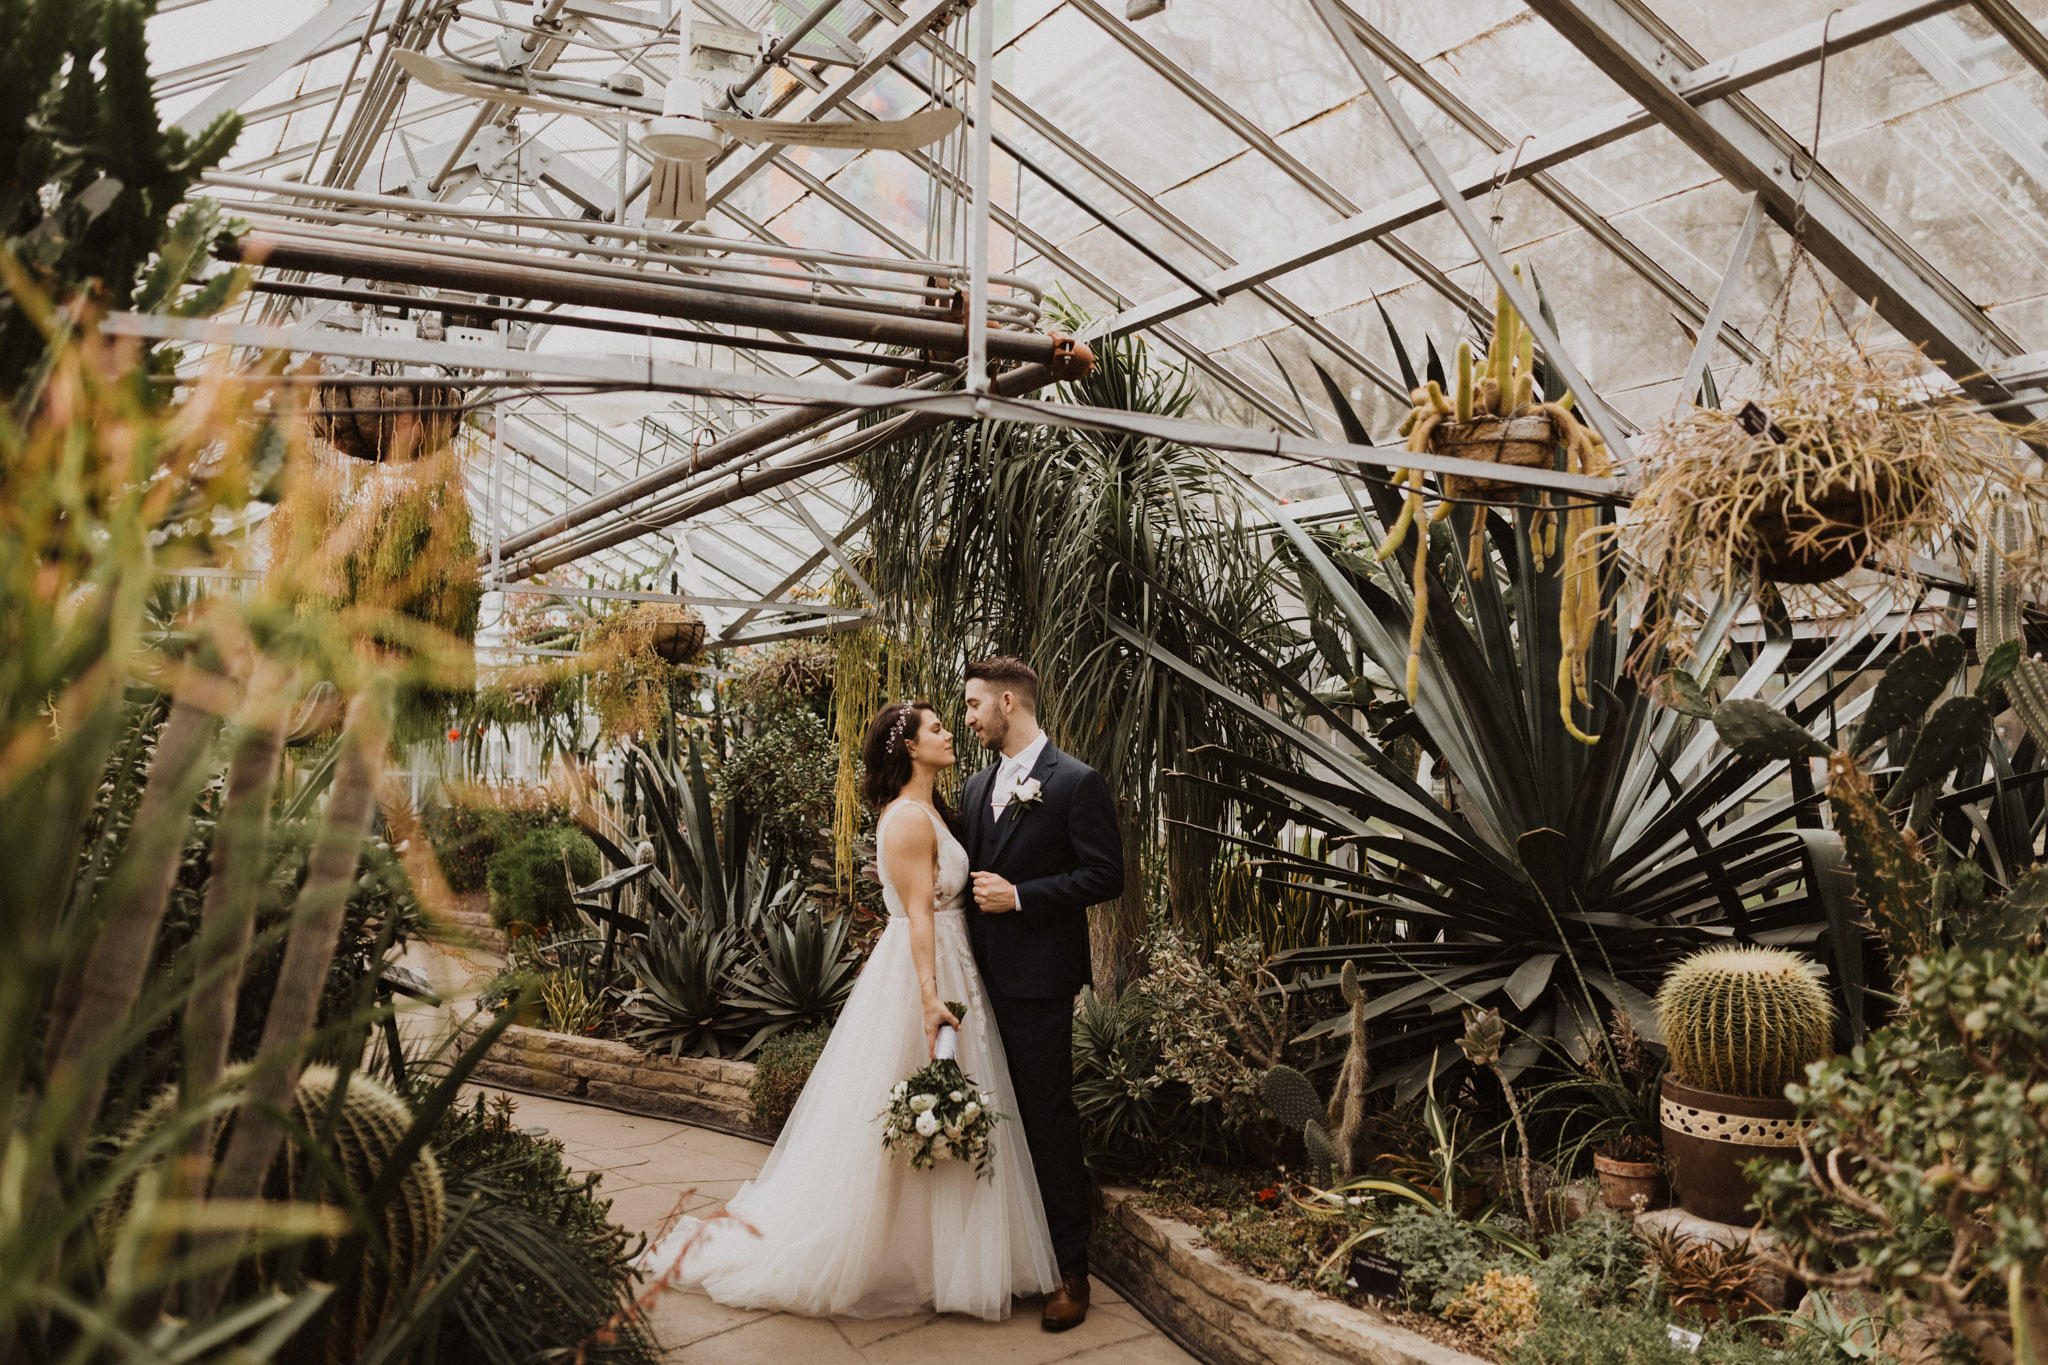 Greenhouse Elopement Allan Gardens Toronto - bride and groom greenhouse